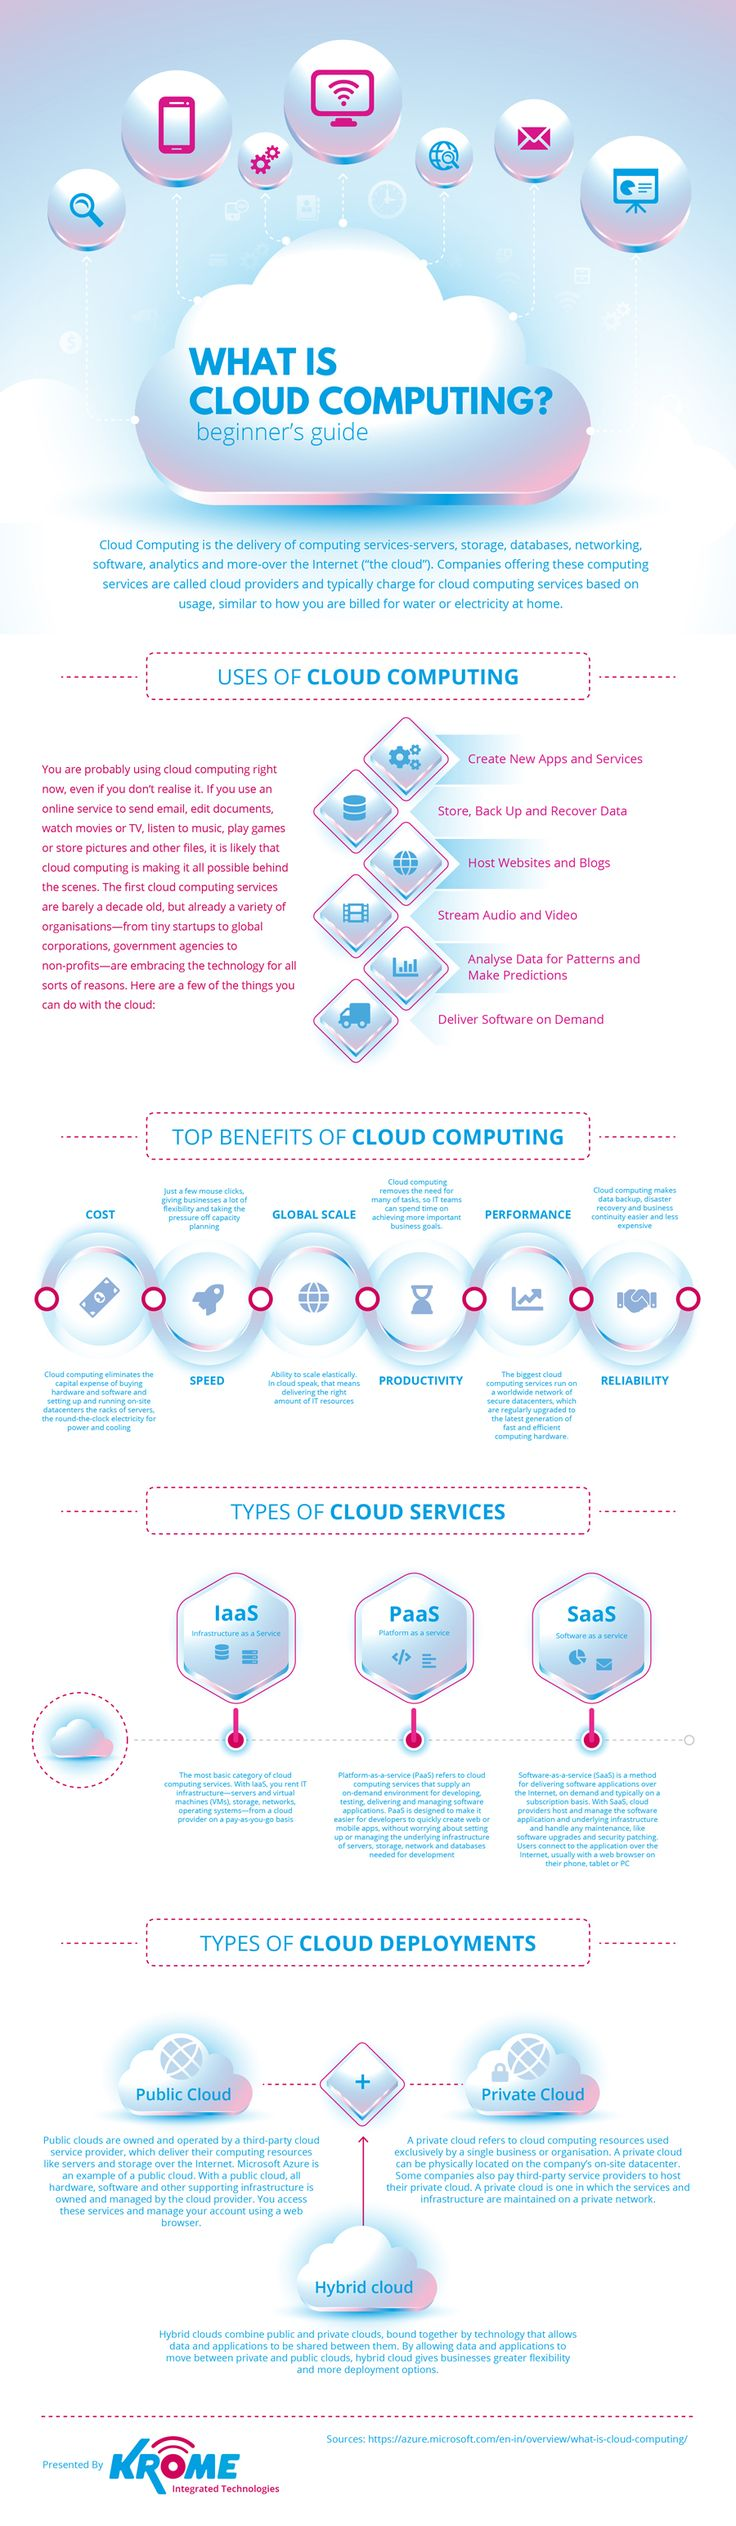 What Is Cloud Computing Infographic - https://elearninginfographics.com/cloud-computing-infographic/